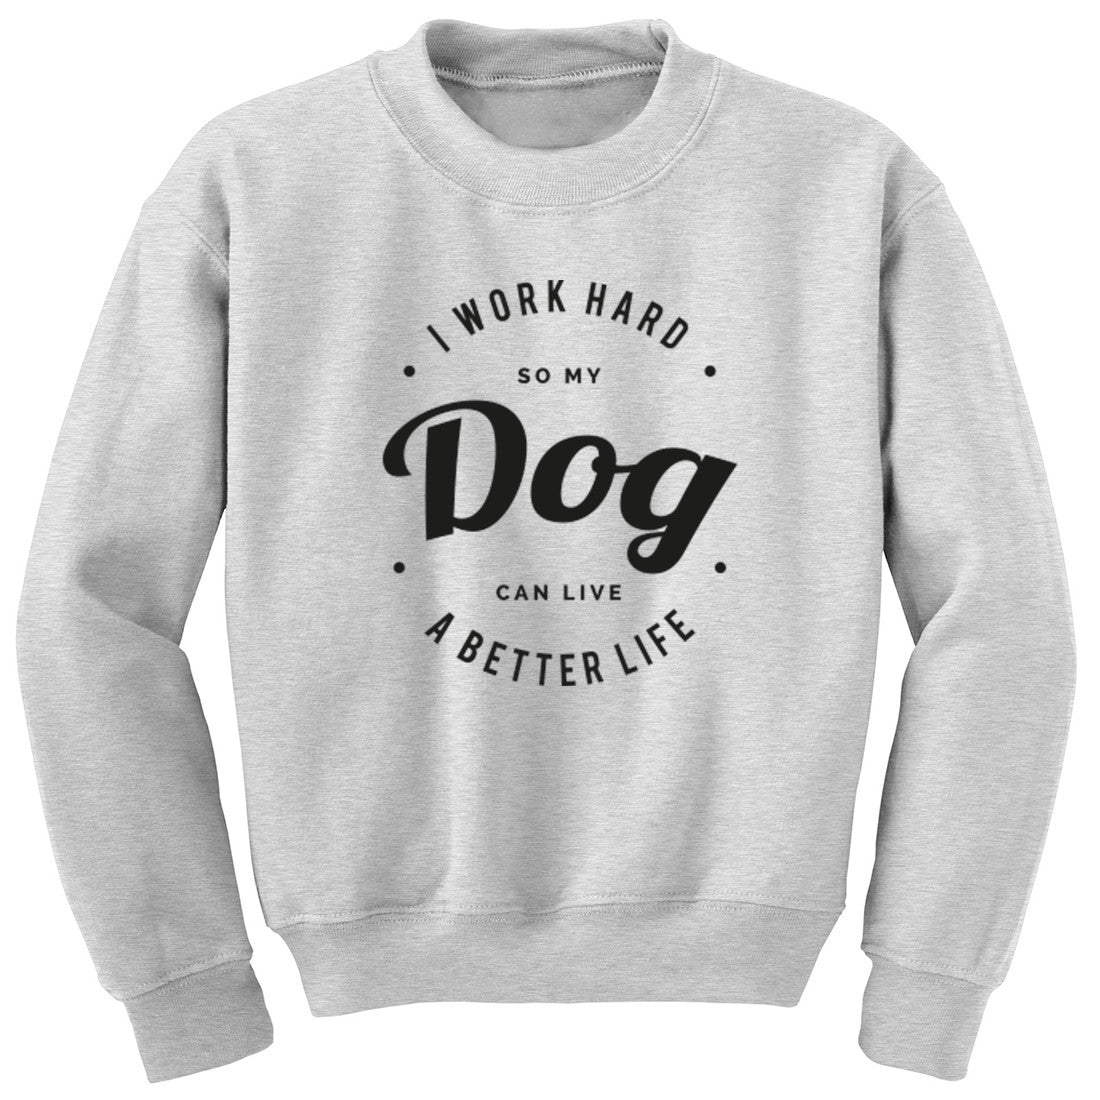 I Work Hard So My Dog Can Live A Better Life Unisex Jumper K0431 - Illustrated Identity Ltd.